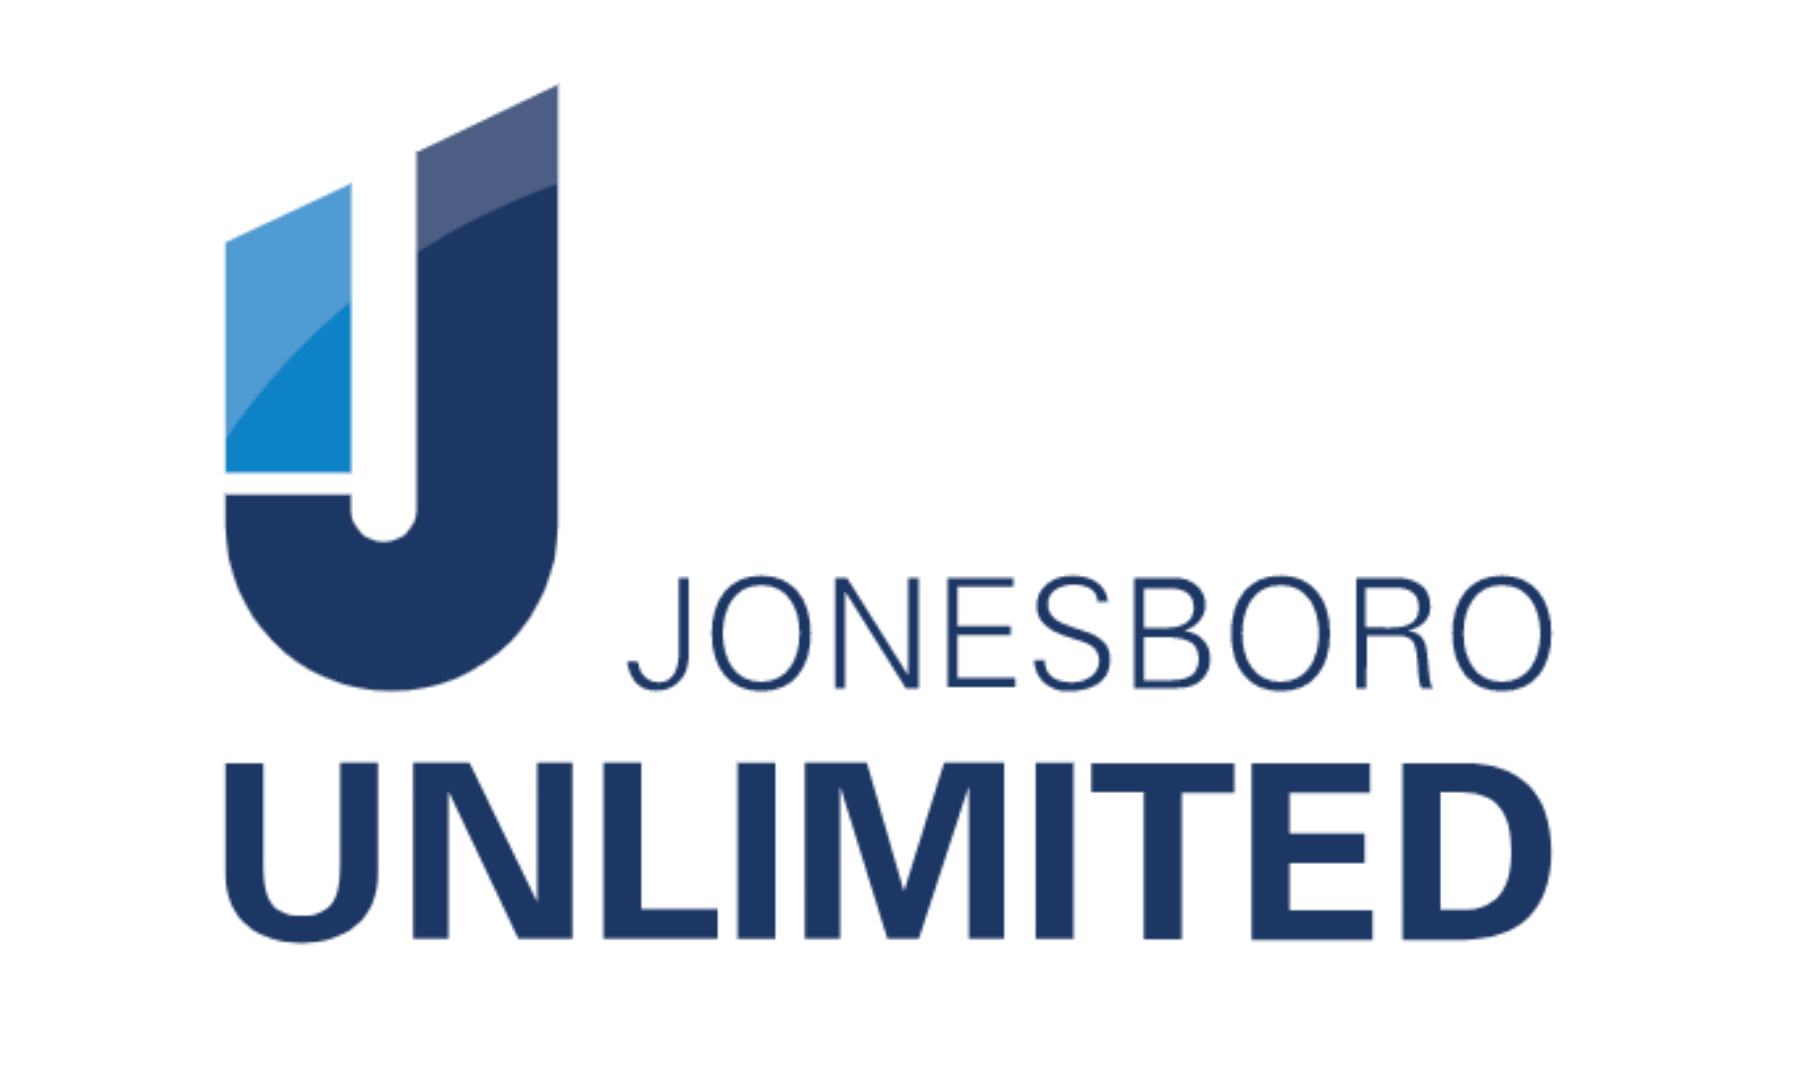 Jonesboro Unlimited – Jonesboro, AR Photo